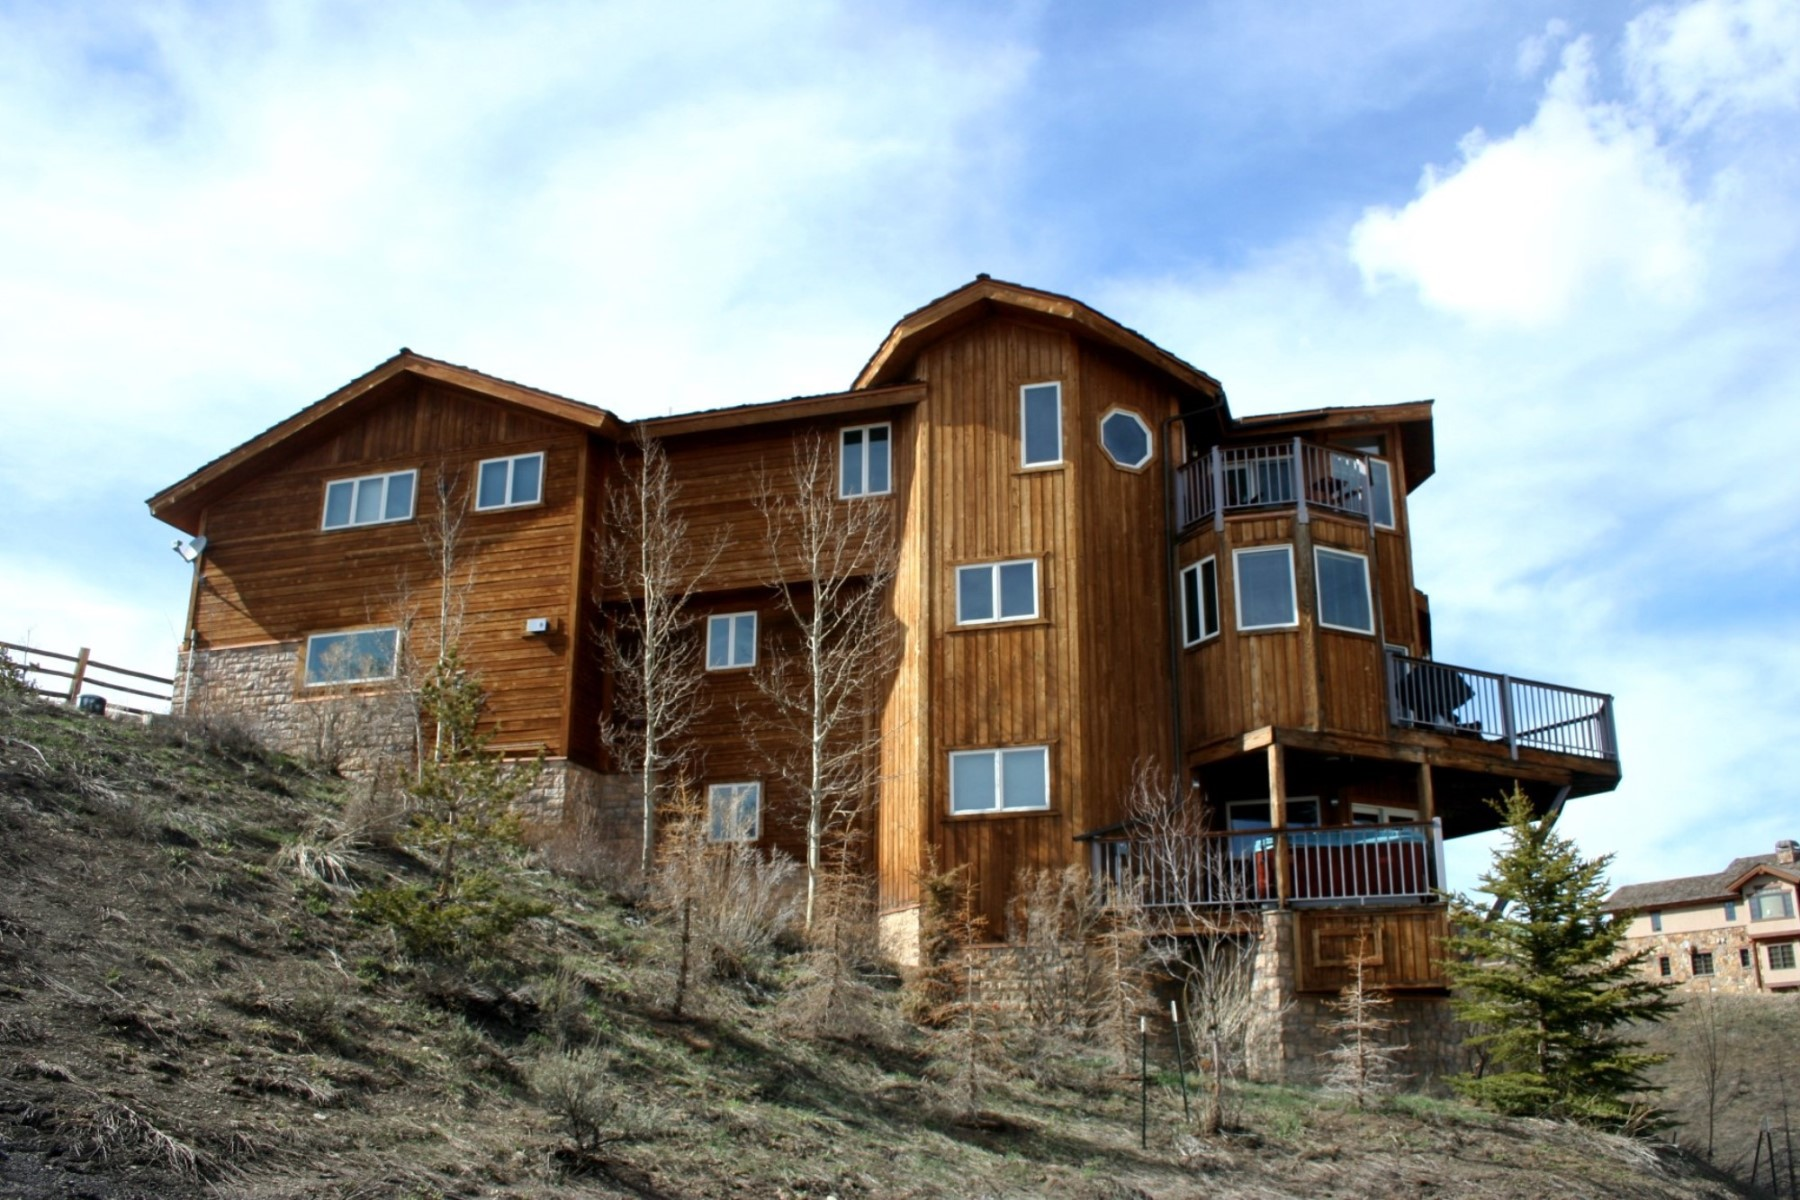 Casa Unifamiliar por un Venta en Inspiring Mountain Home 18 Buttercup Lane Mount Crested Butte, Colorado, 81225 Estados Unidos